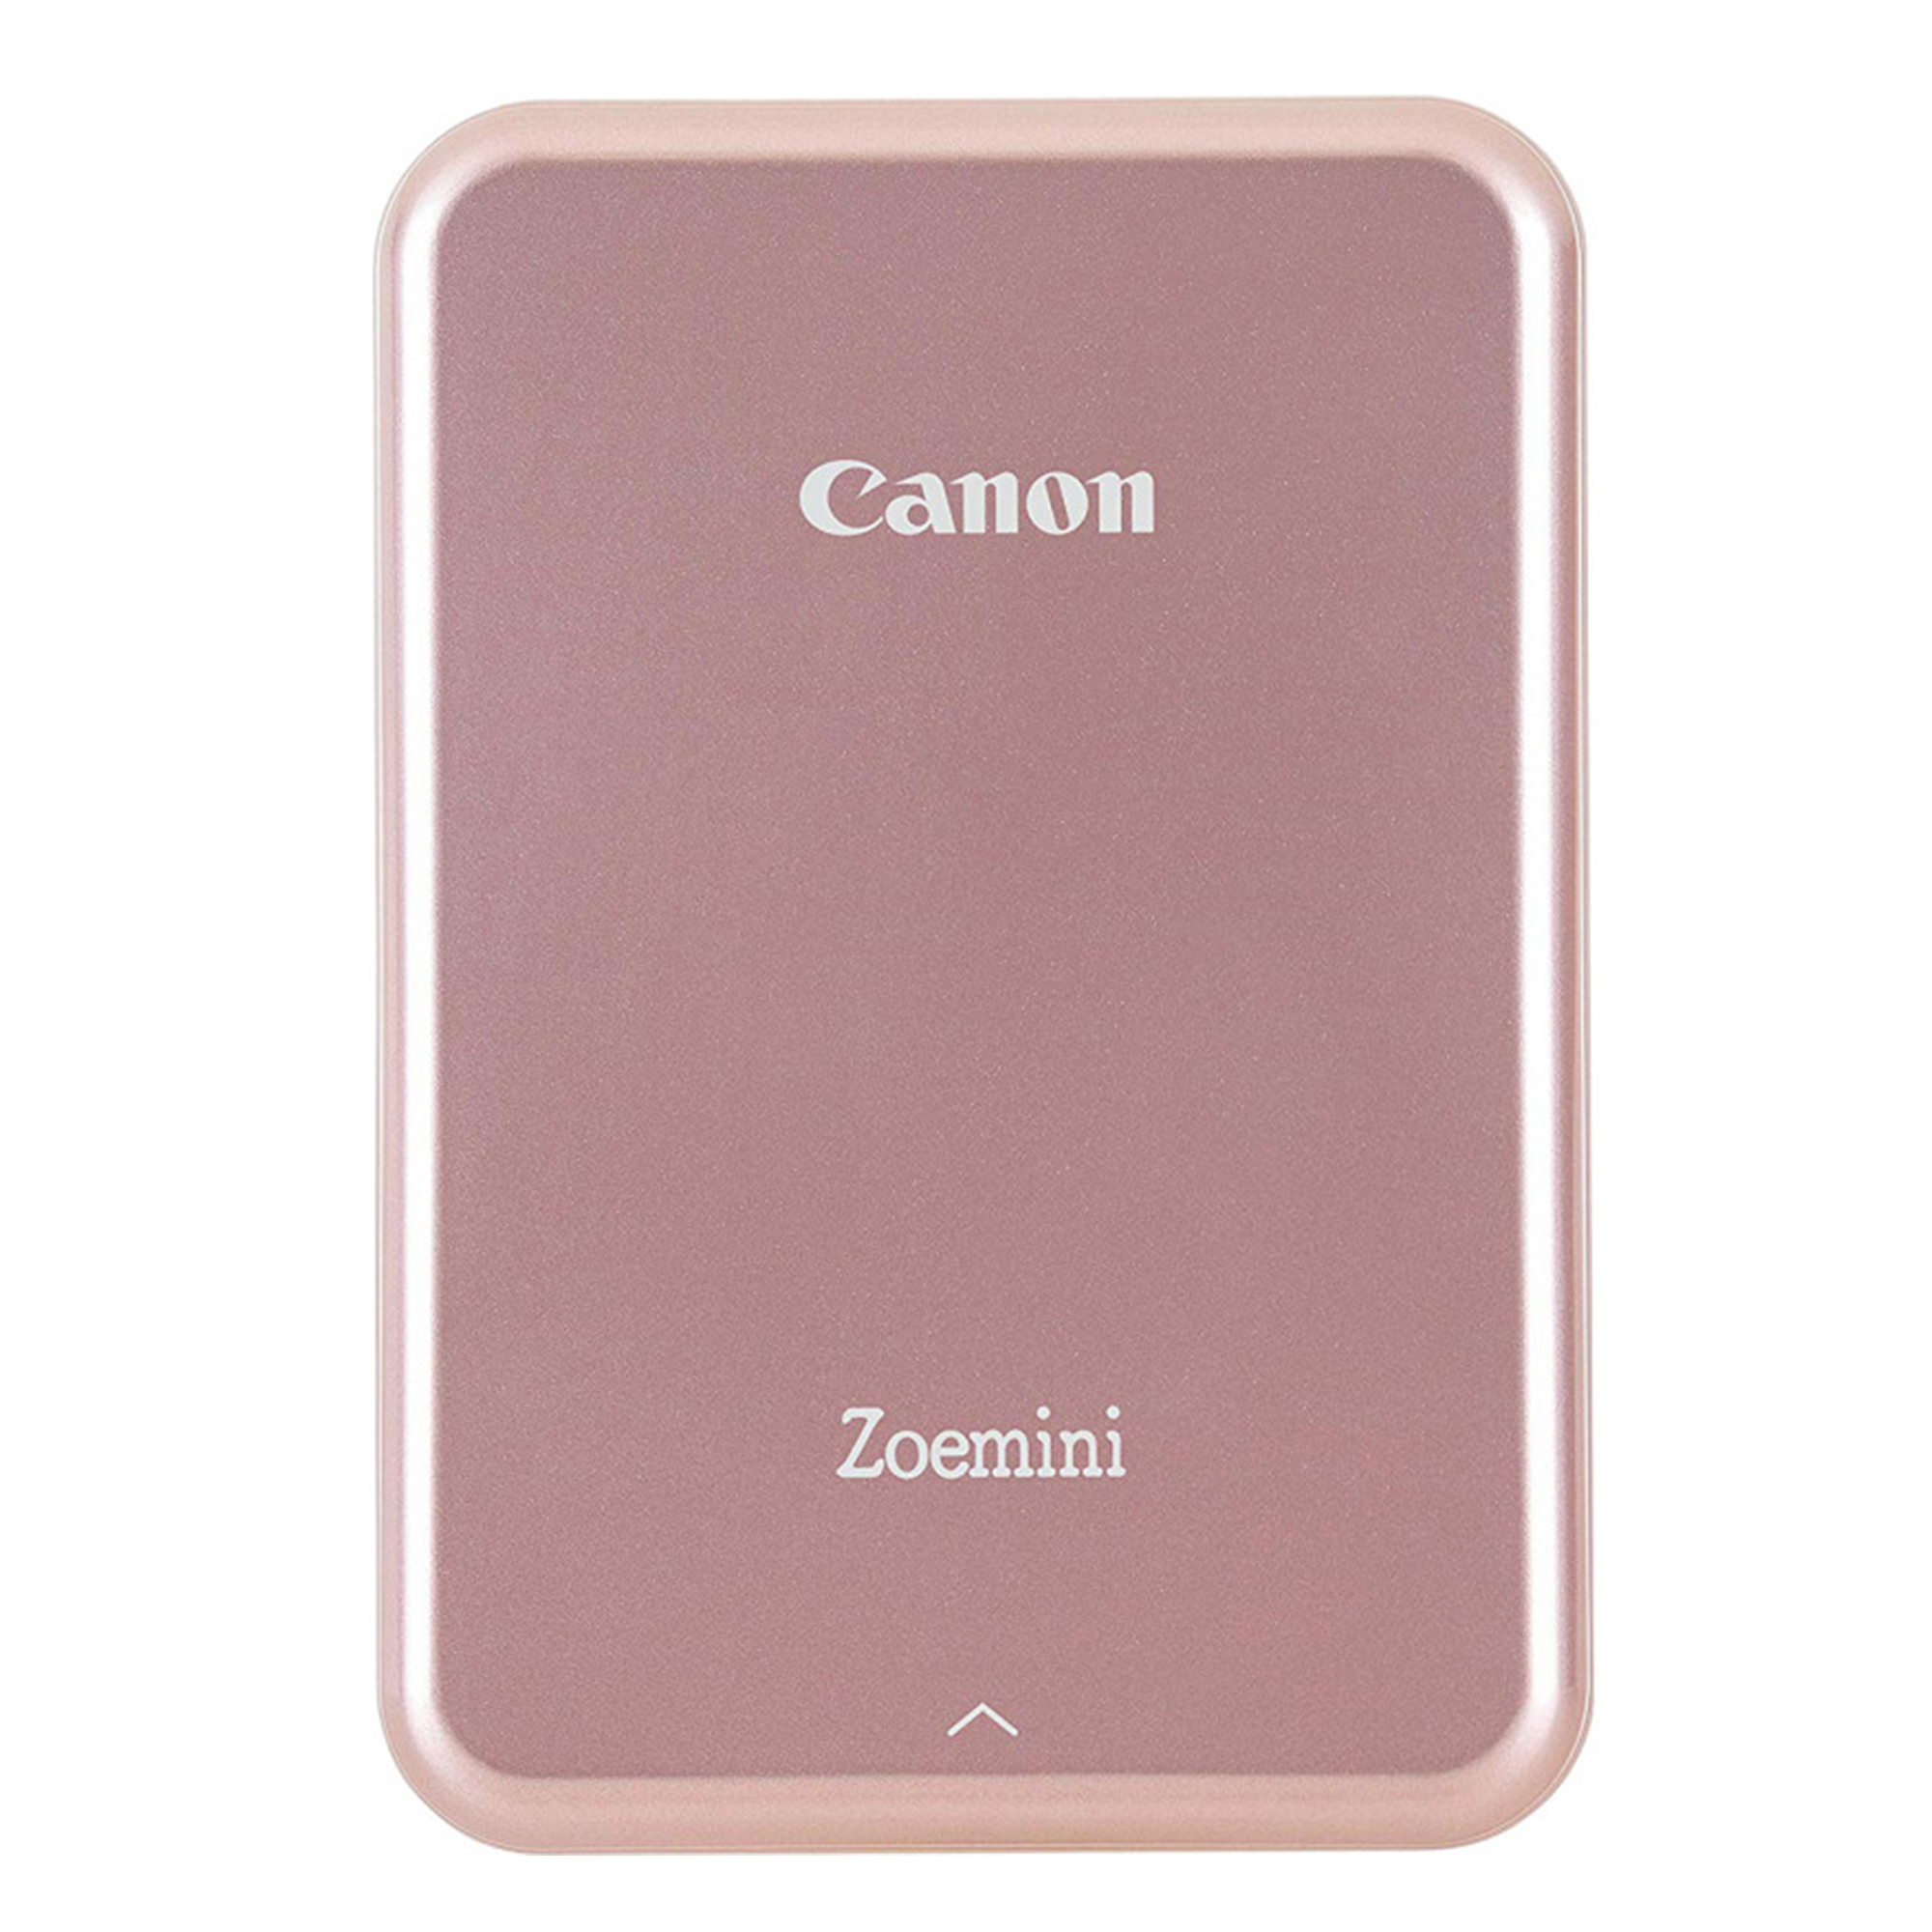 Canon Zoemini Printer - Pink + Canon Zink Paper ZP-2030 20 Sheets